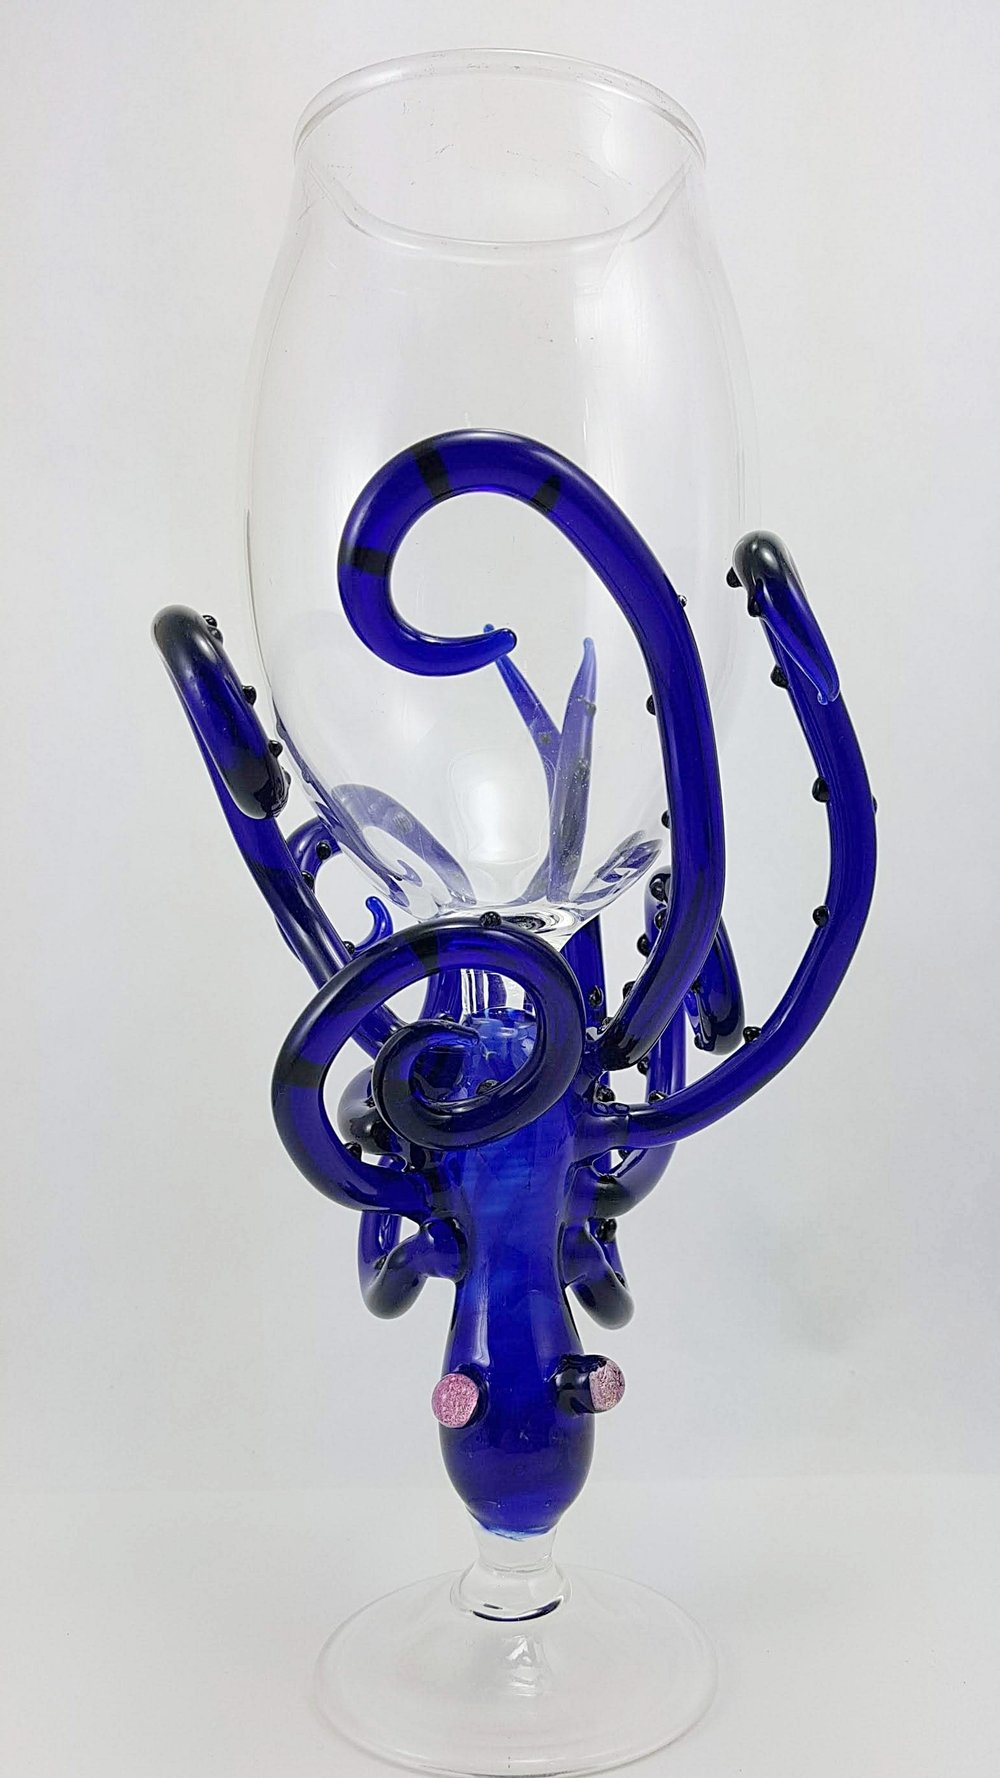 Mousework Glass - is a family owned glass-blowing company providing both decorative and functional glass products.  With nearly 20 years of glassblowing experience, Mousework Glass provides a broad variety of products made from sturdy borosillicate glass.  Our products are available as special-order, wholesale, on-line, or at numerous retail stores around Minnesota.  In addition to our presence at numerous art shows throughout the year, our glass can be seen at the following locations.IngebretsensChema MaluRose and LoonSerendipity Art GalleryMinnesota Science MuseumAZ GalleryStillwater Art GalleryChickadee BoutiquePeggy's Holiday BoutiqueAllina Hosptal Gift--shopsRAAS at MOAFor upcoming art shows see our events on Facebook.